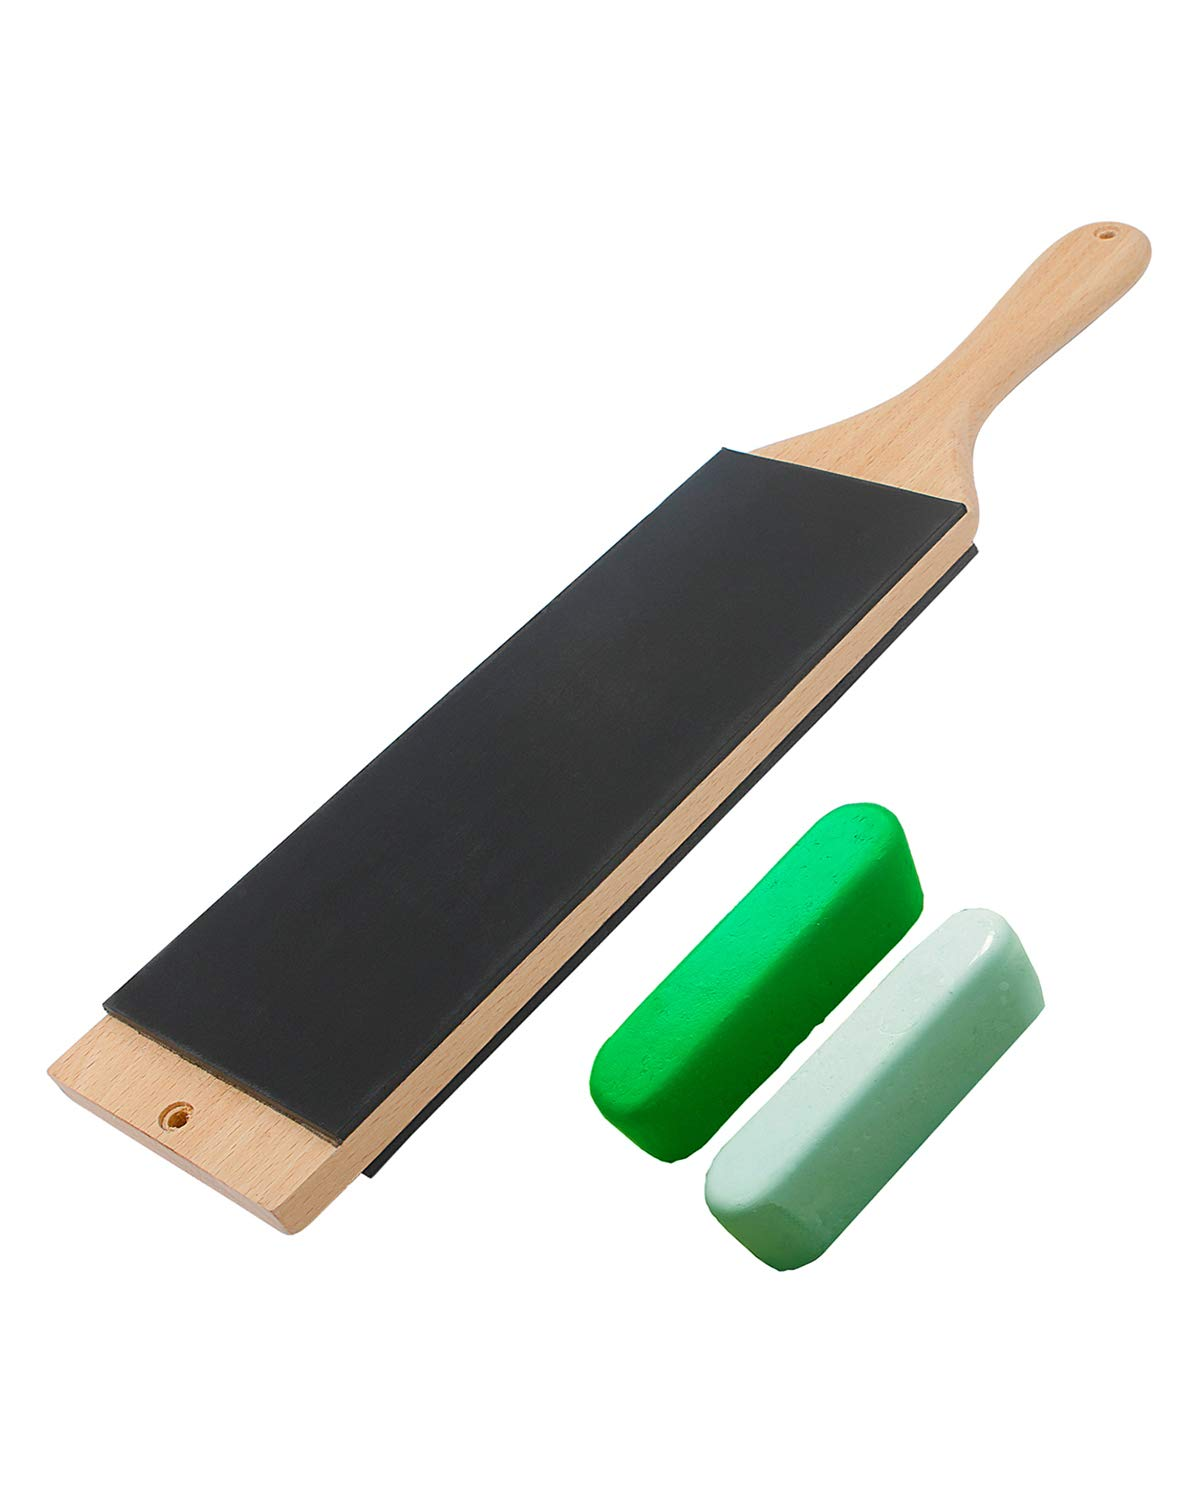 Leather Paddle Strop Large 2 Sided 3 Inch by 9 Inch with 2.8oz. Green White Compound (PADDLE STROP)